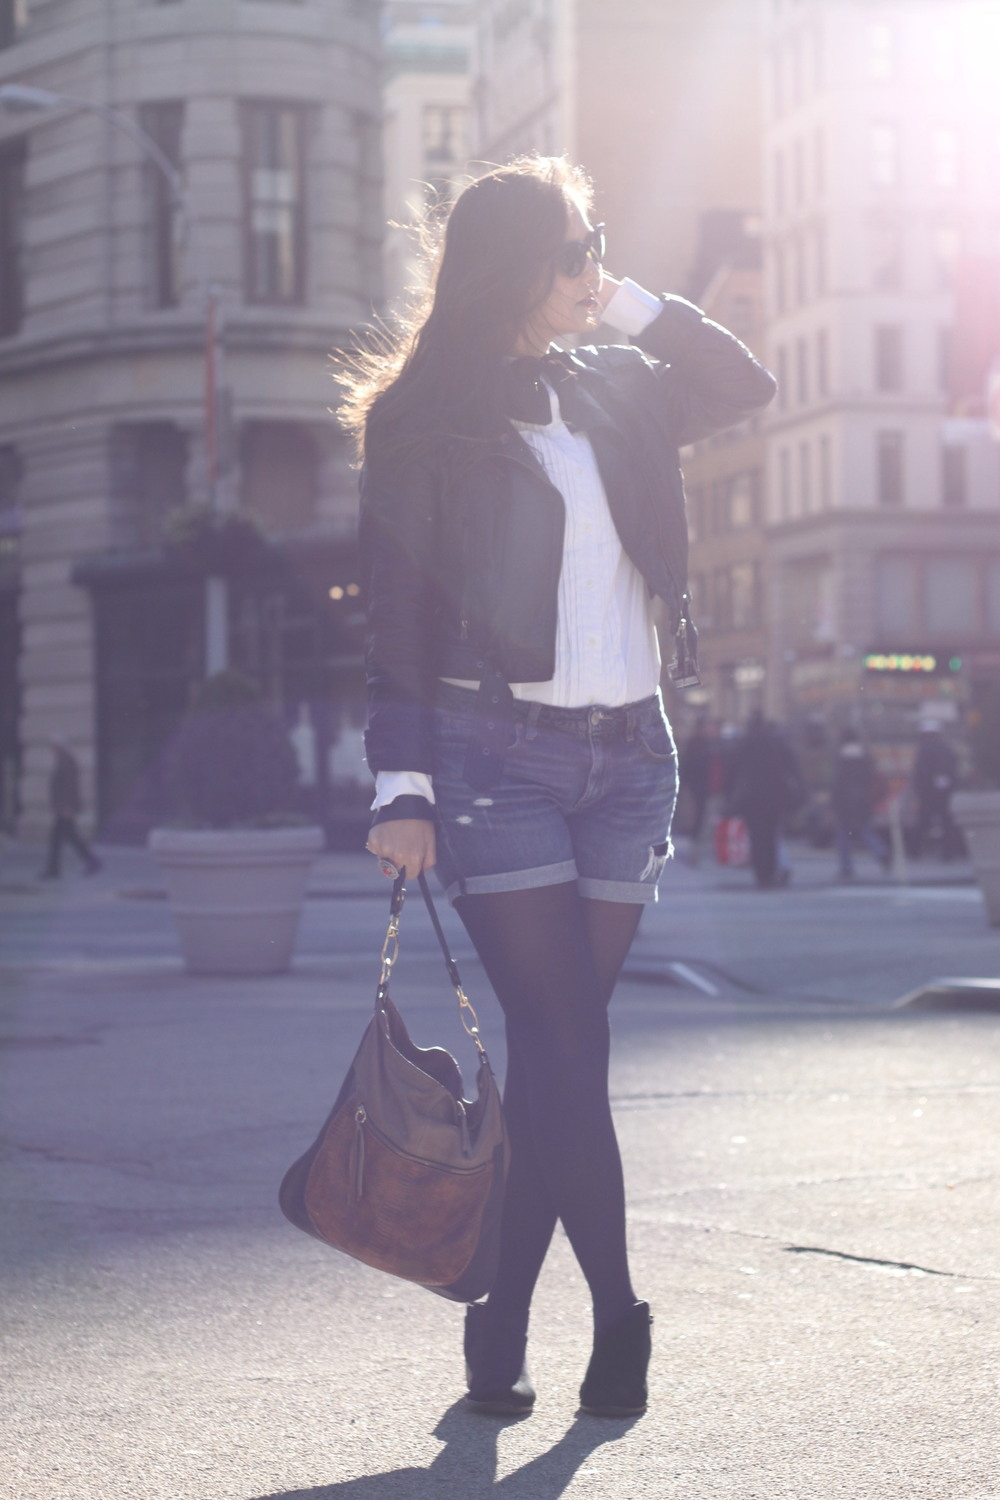 Jacket: H&M. Button down:  Uniqlo . Bow tie: ASOS (similar  here ). Denim shorts: American Eagle. Boots: Dune. Bag: Marni